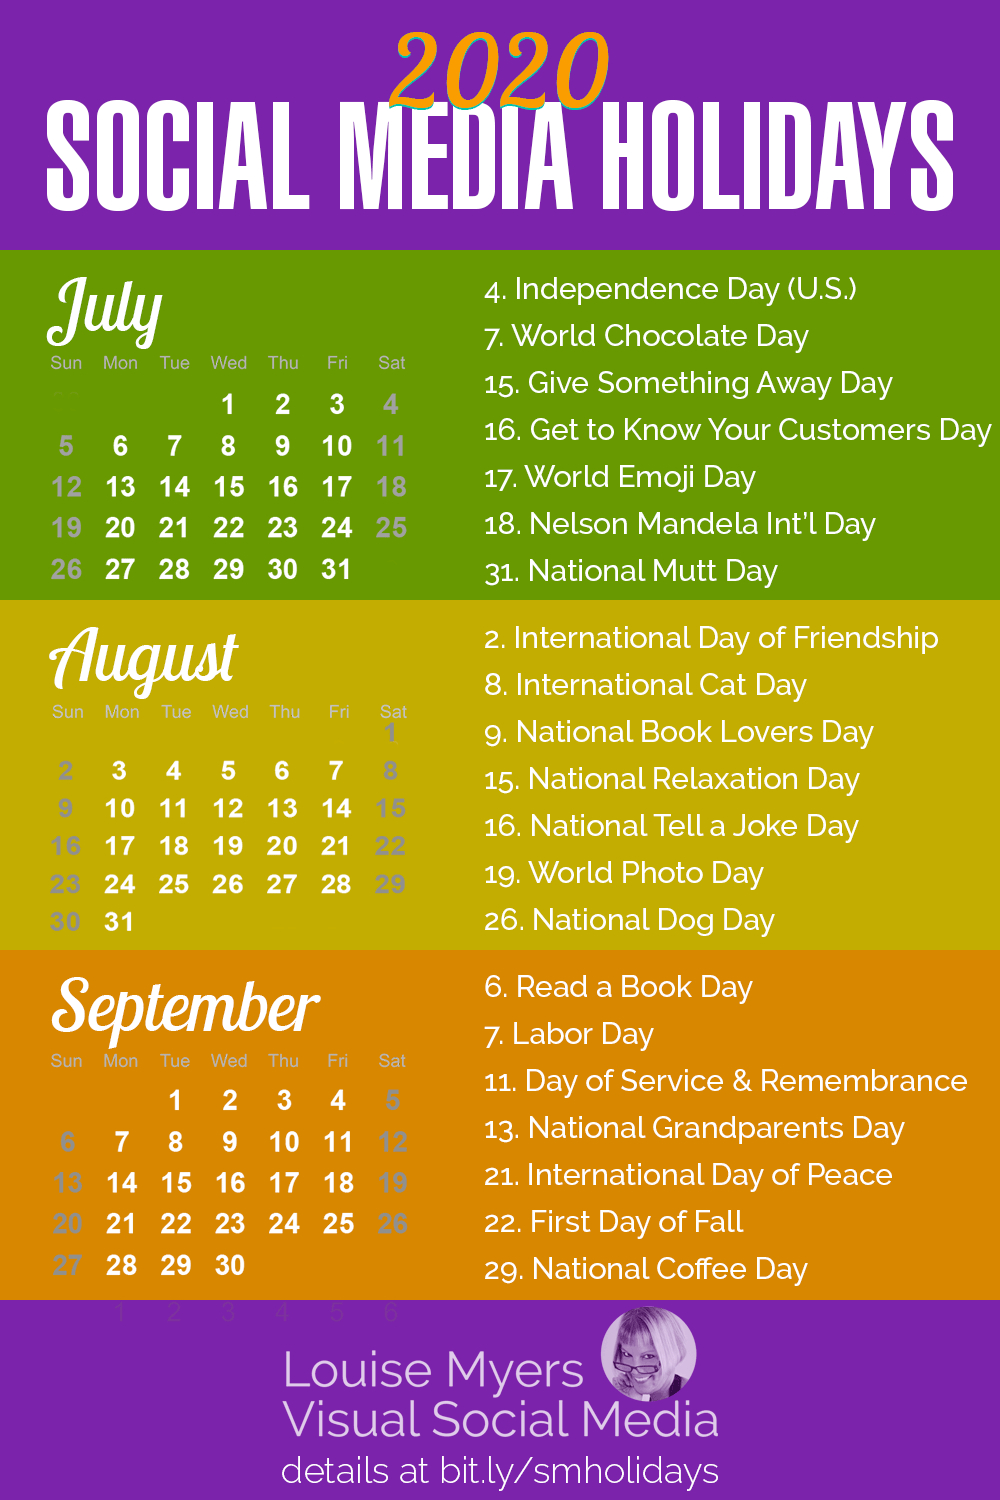 84 Social Media Holidays You Need In 2020: Indispensable! pertaining to January 16 Holidays & Observances